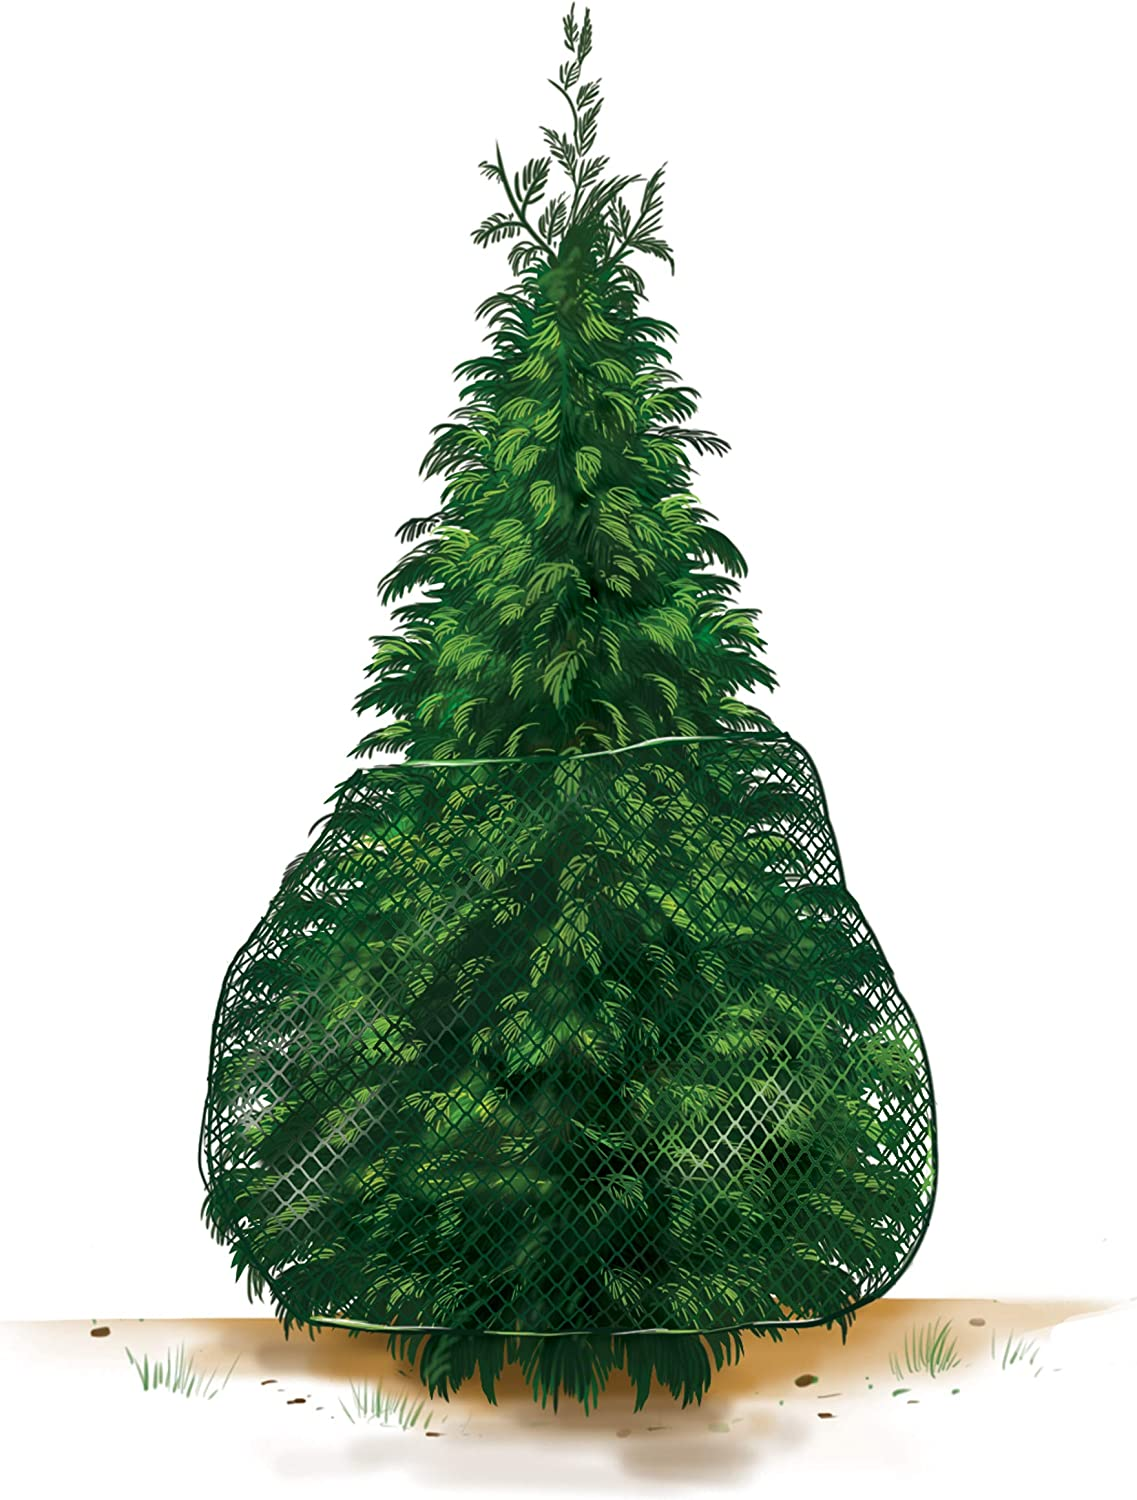 Arborvitae Deer Netting Protection- for Arborvitae Trees Up to 10' Tall